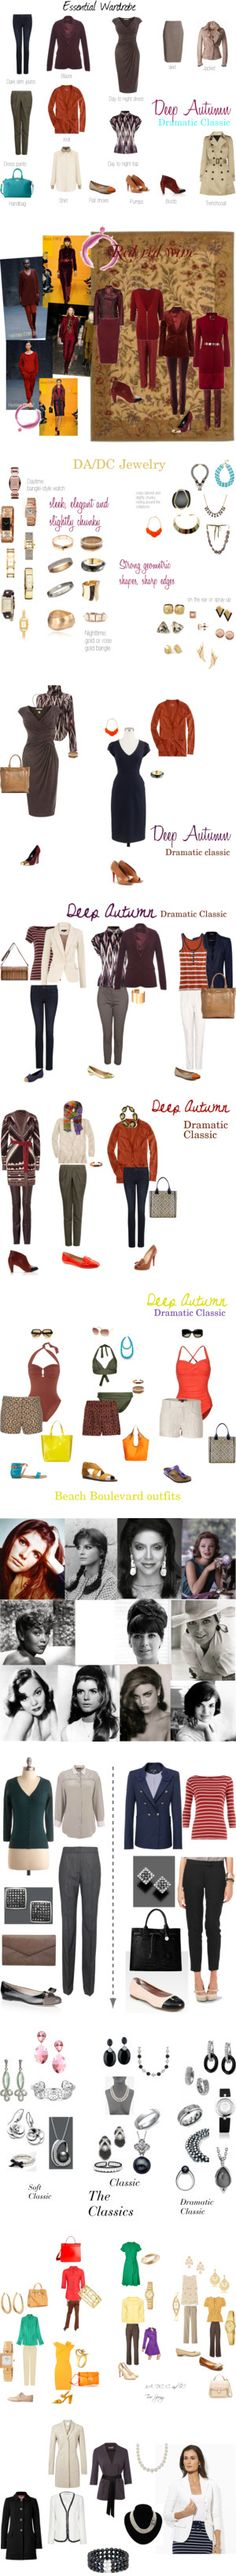 """""""Kibbe Dramatic Classic: """"Striking."""""""" by in-vero-pulcritudo on Polyvore"""